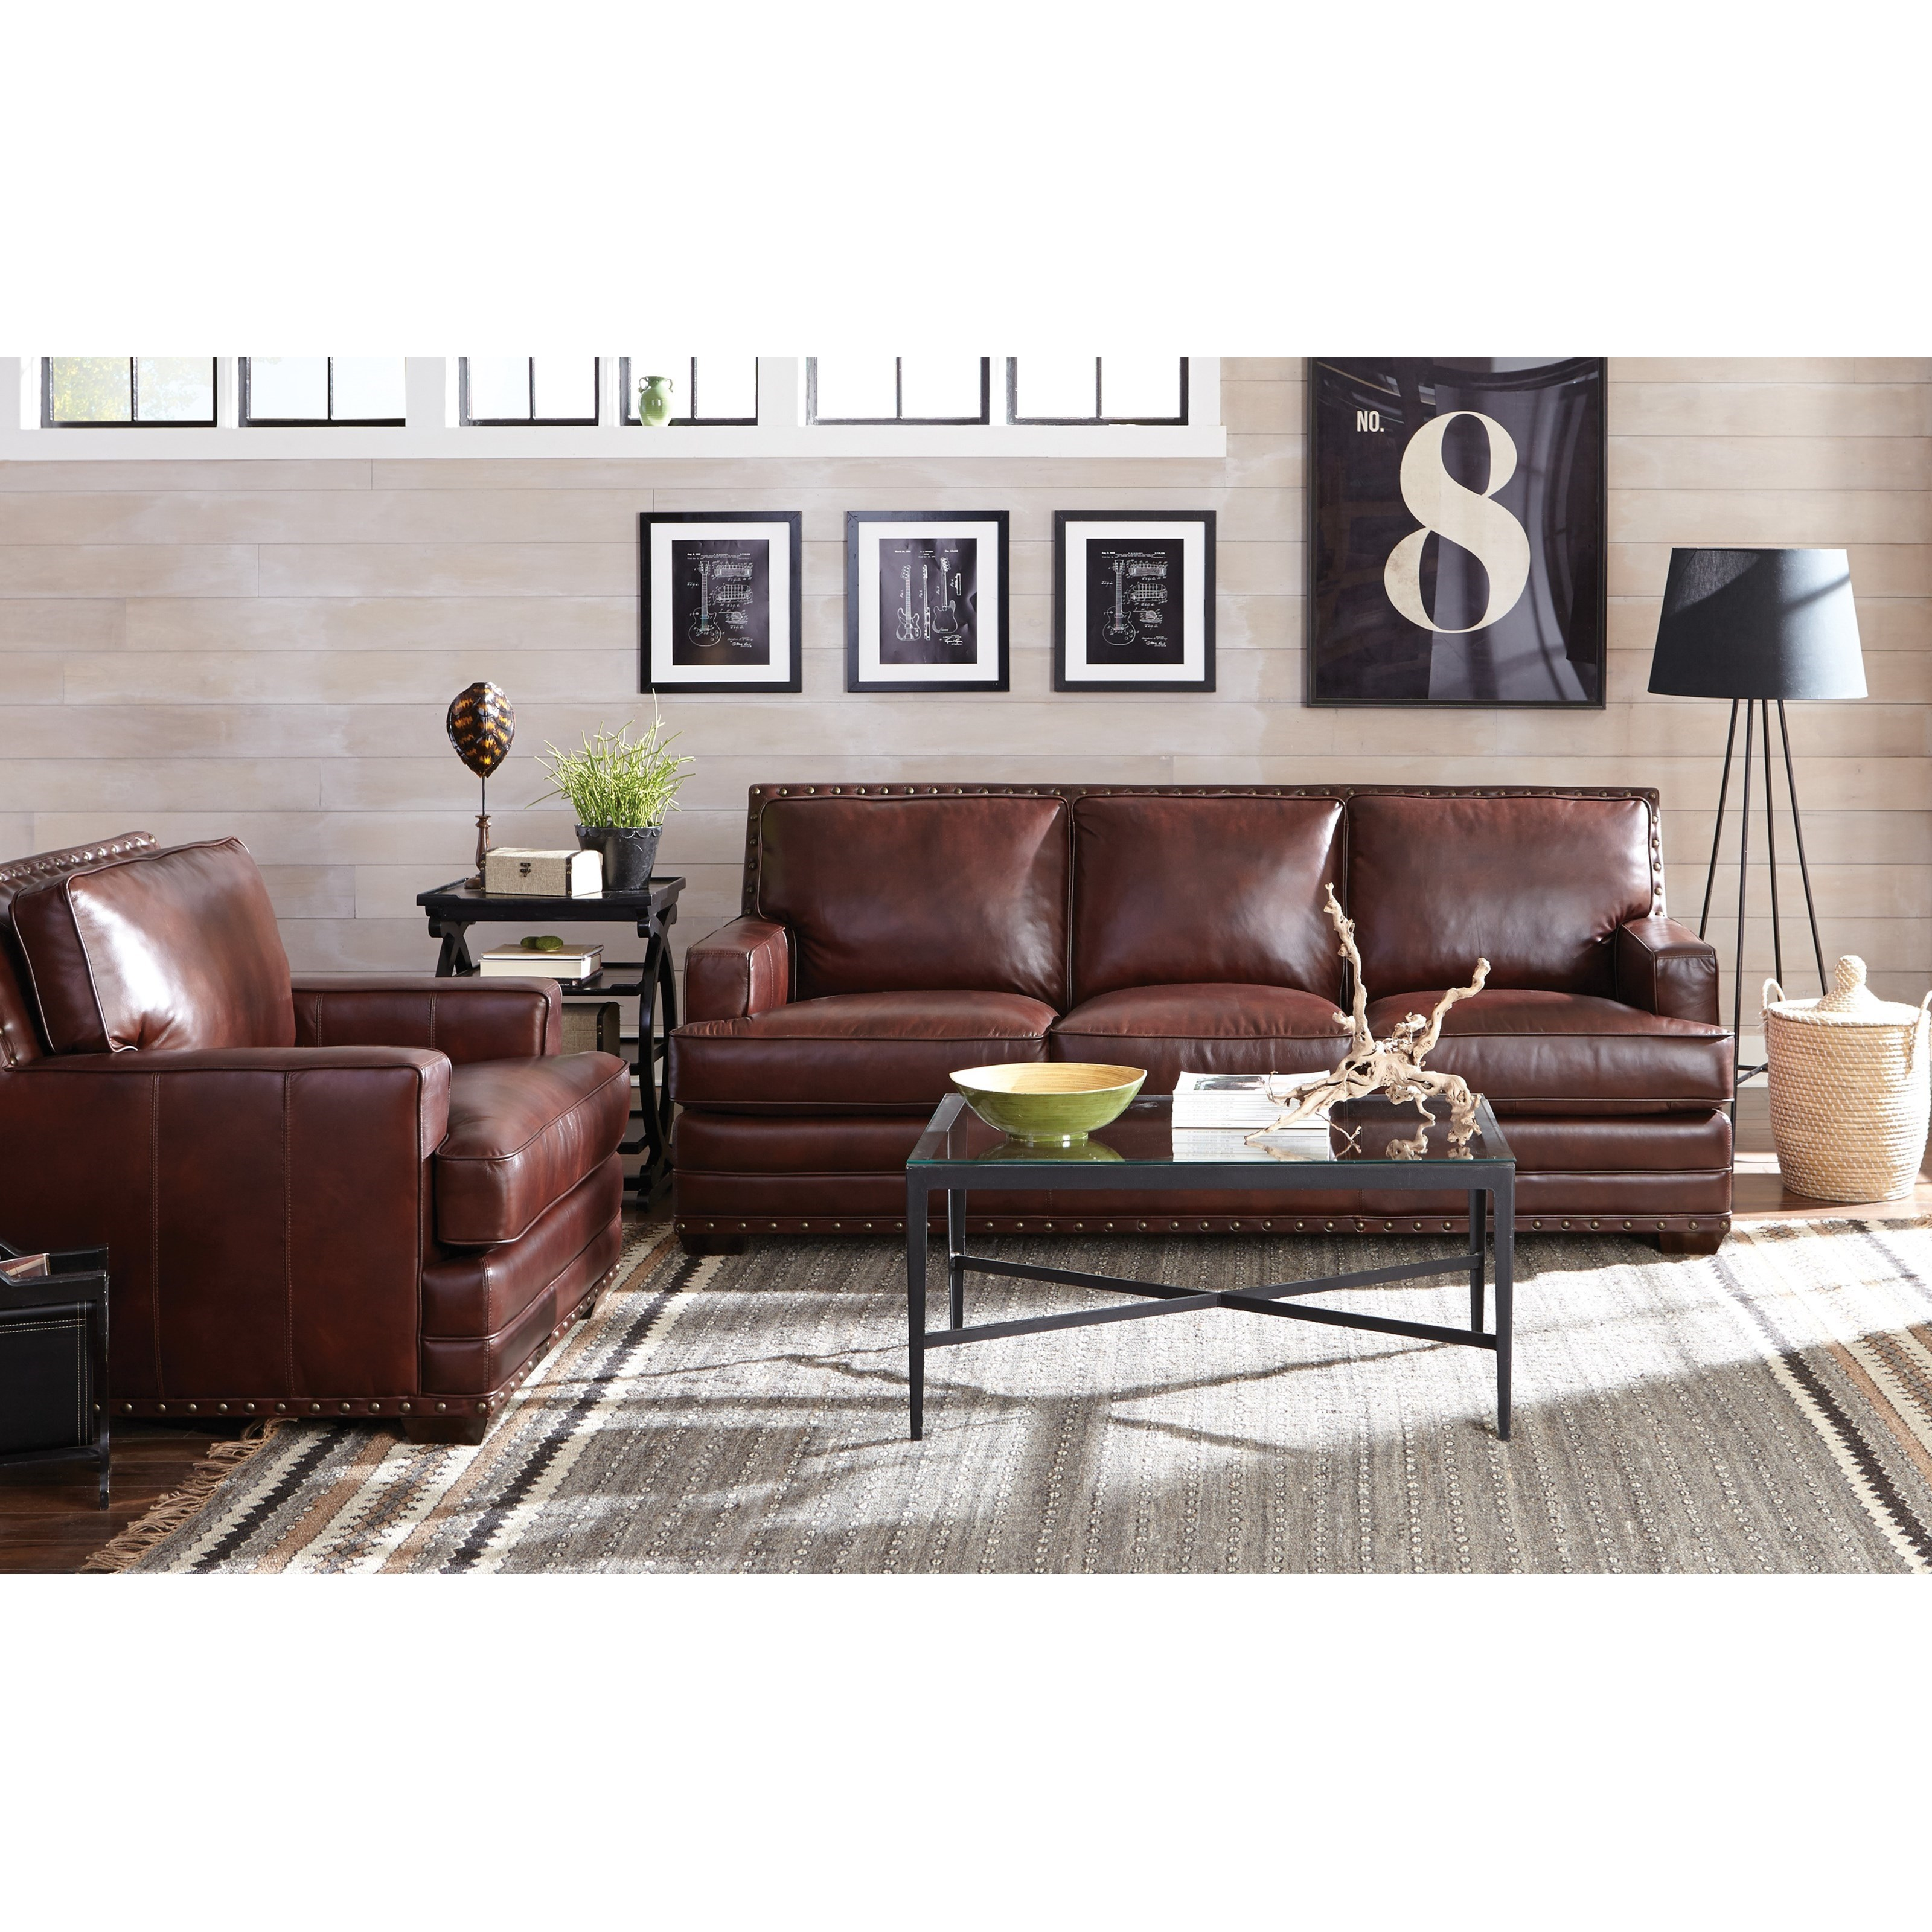 Craftmaster l1652 transitional living room group for Living room furniture groups